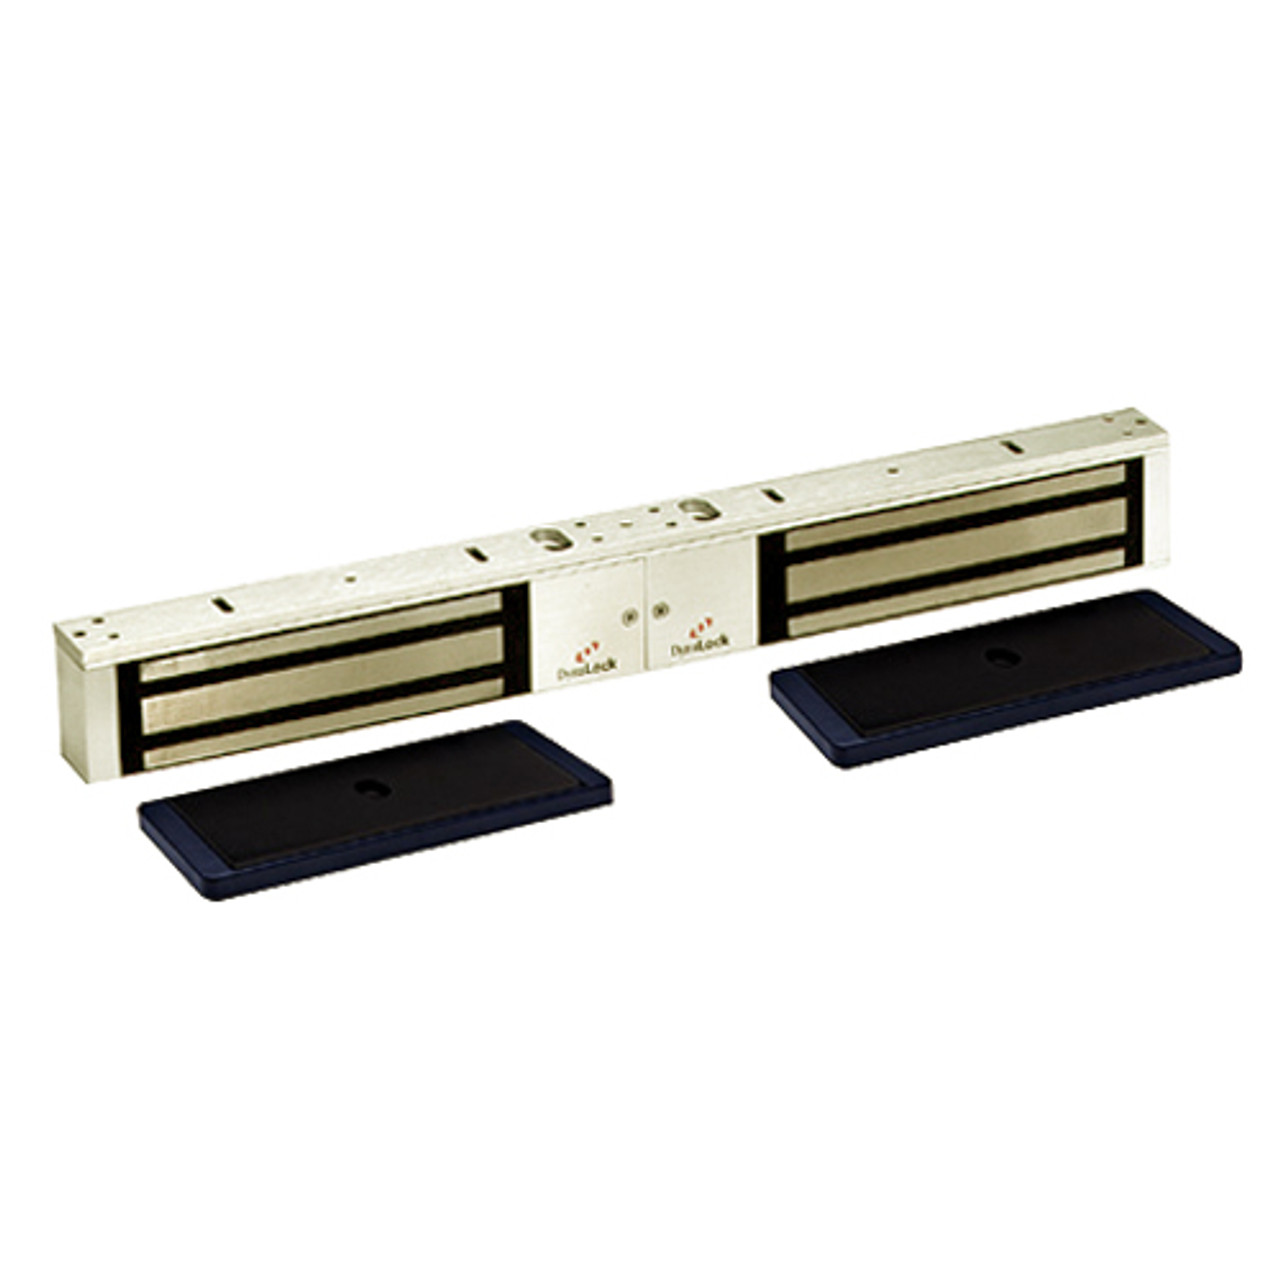 2022-US4 DynaLock 2000 Series 1200 LB Holding Force Double Outswing Electromagnetic Lock in Satin Brass